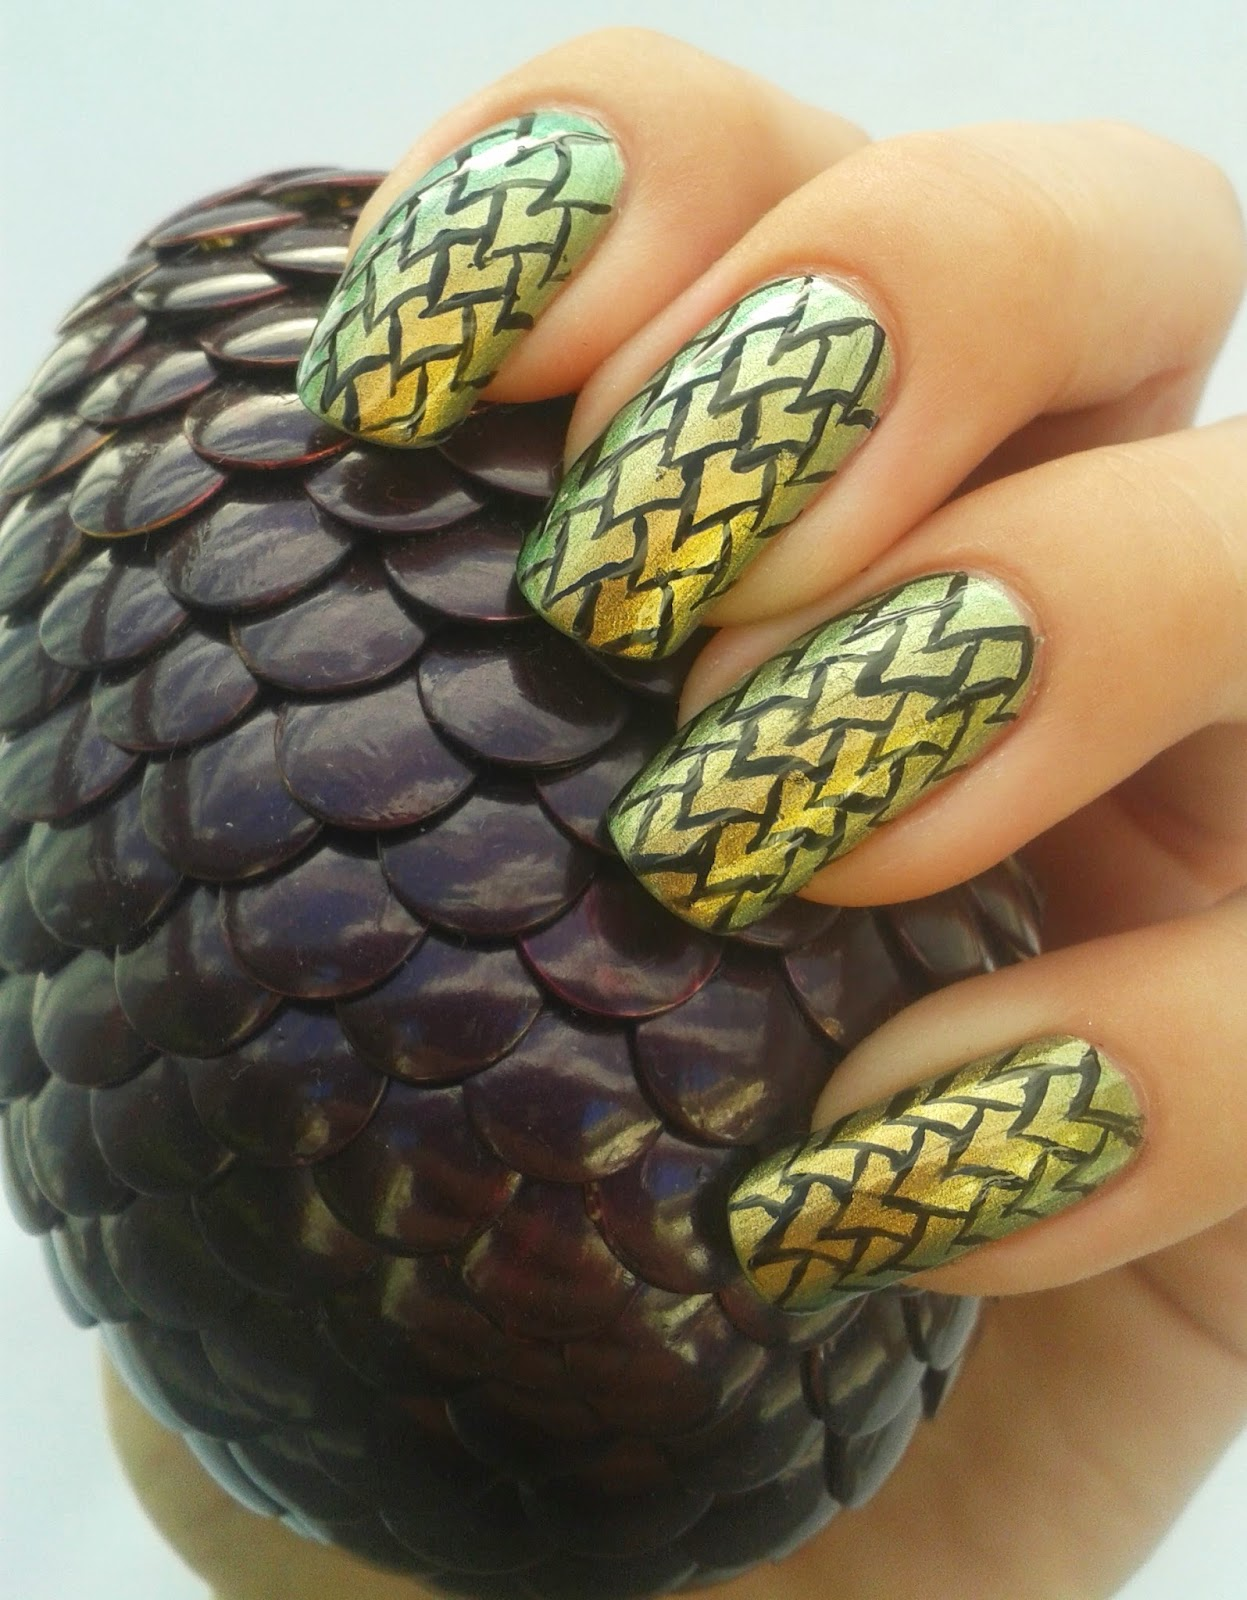 PrettyLittlePolish : Game of Thrones Dragon Scale Nail Art